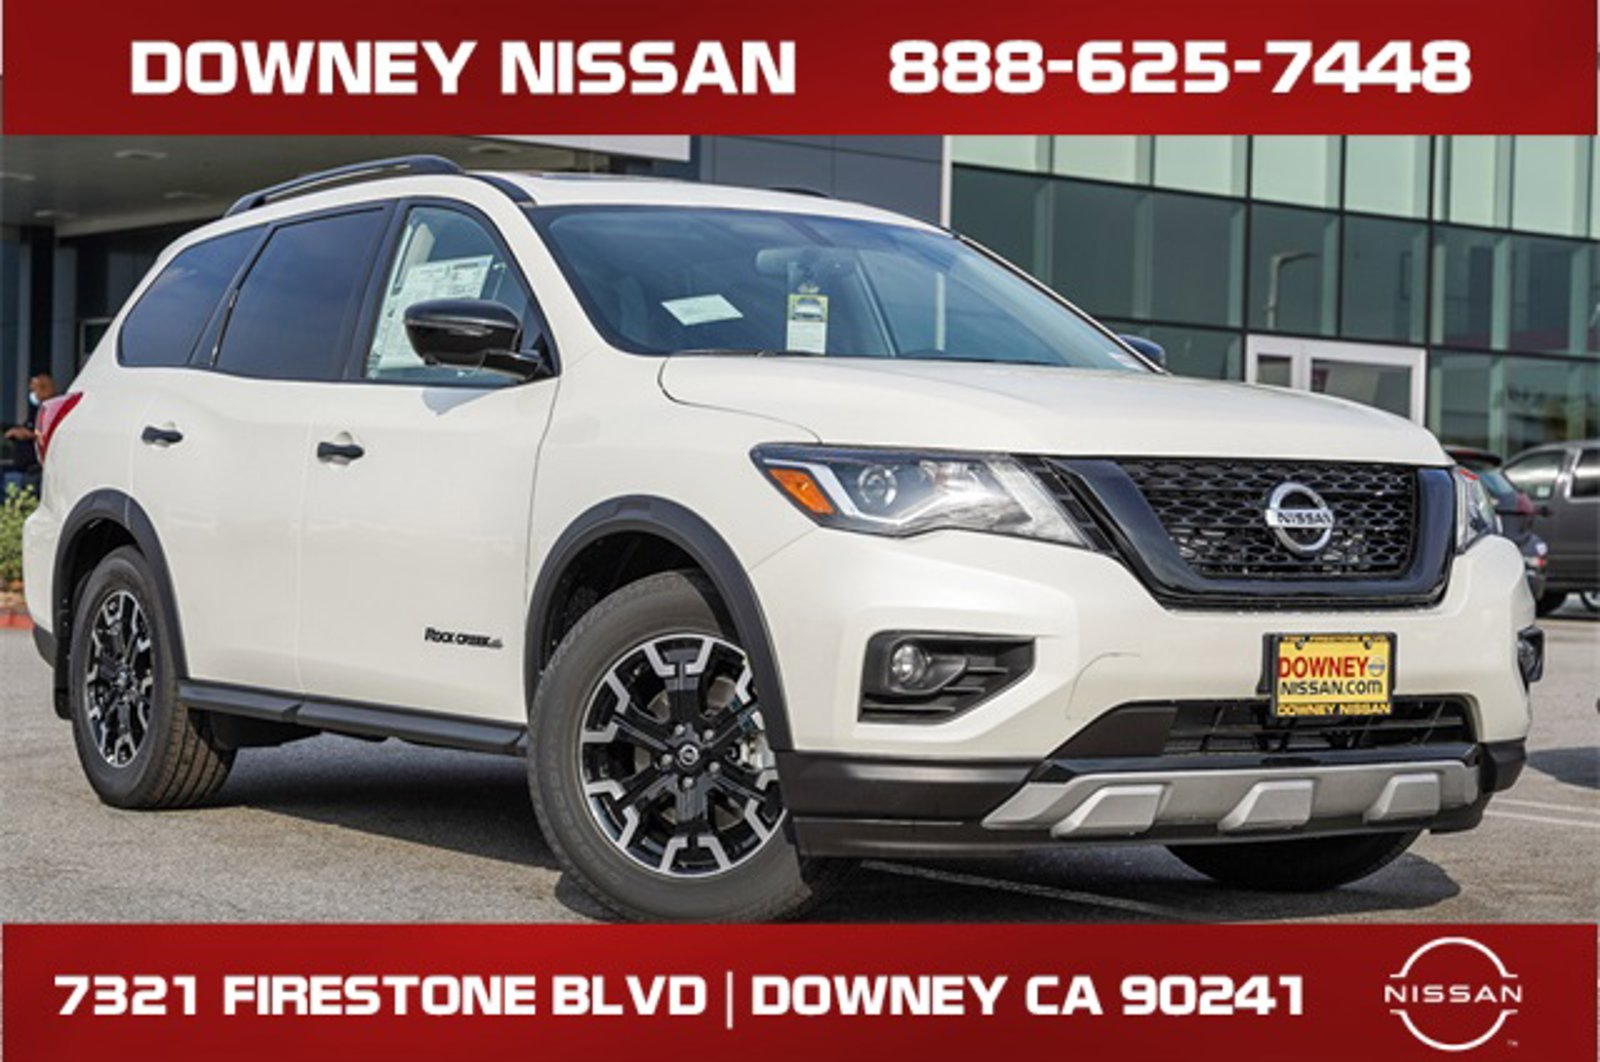 2020 Nissan Pathfinder SL FWD SL Regular Unleaded V-6 3.5 L/213 [25]